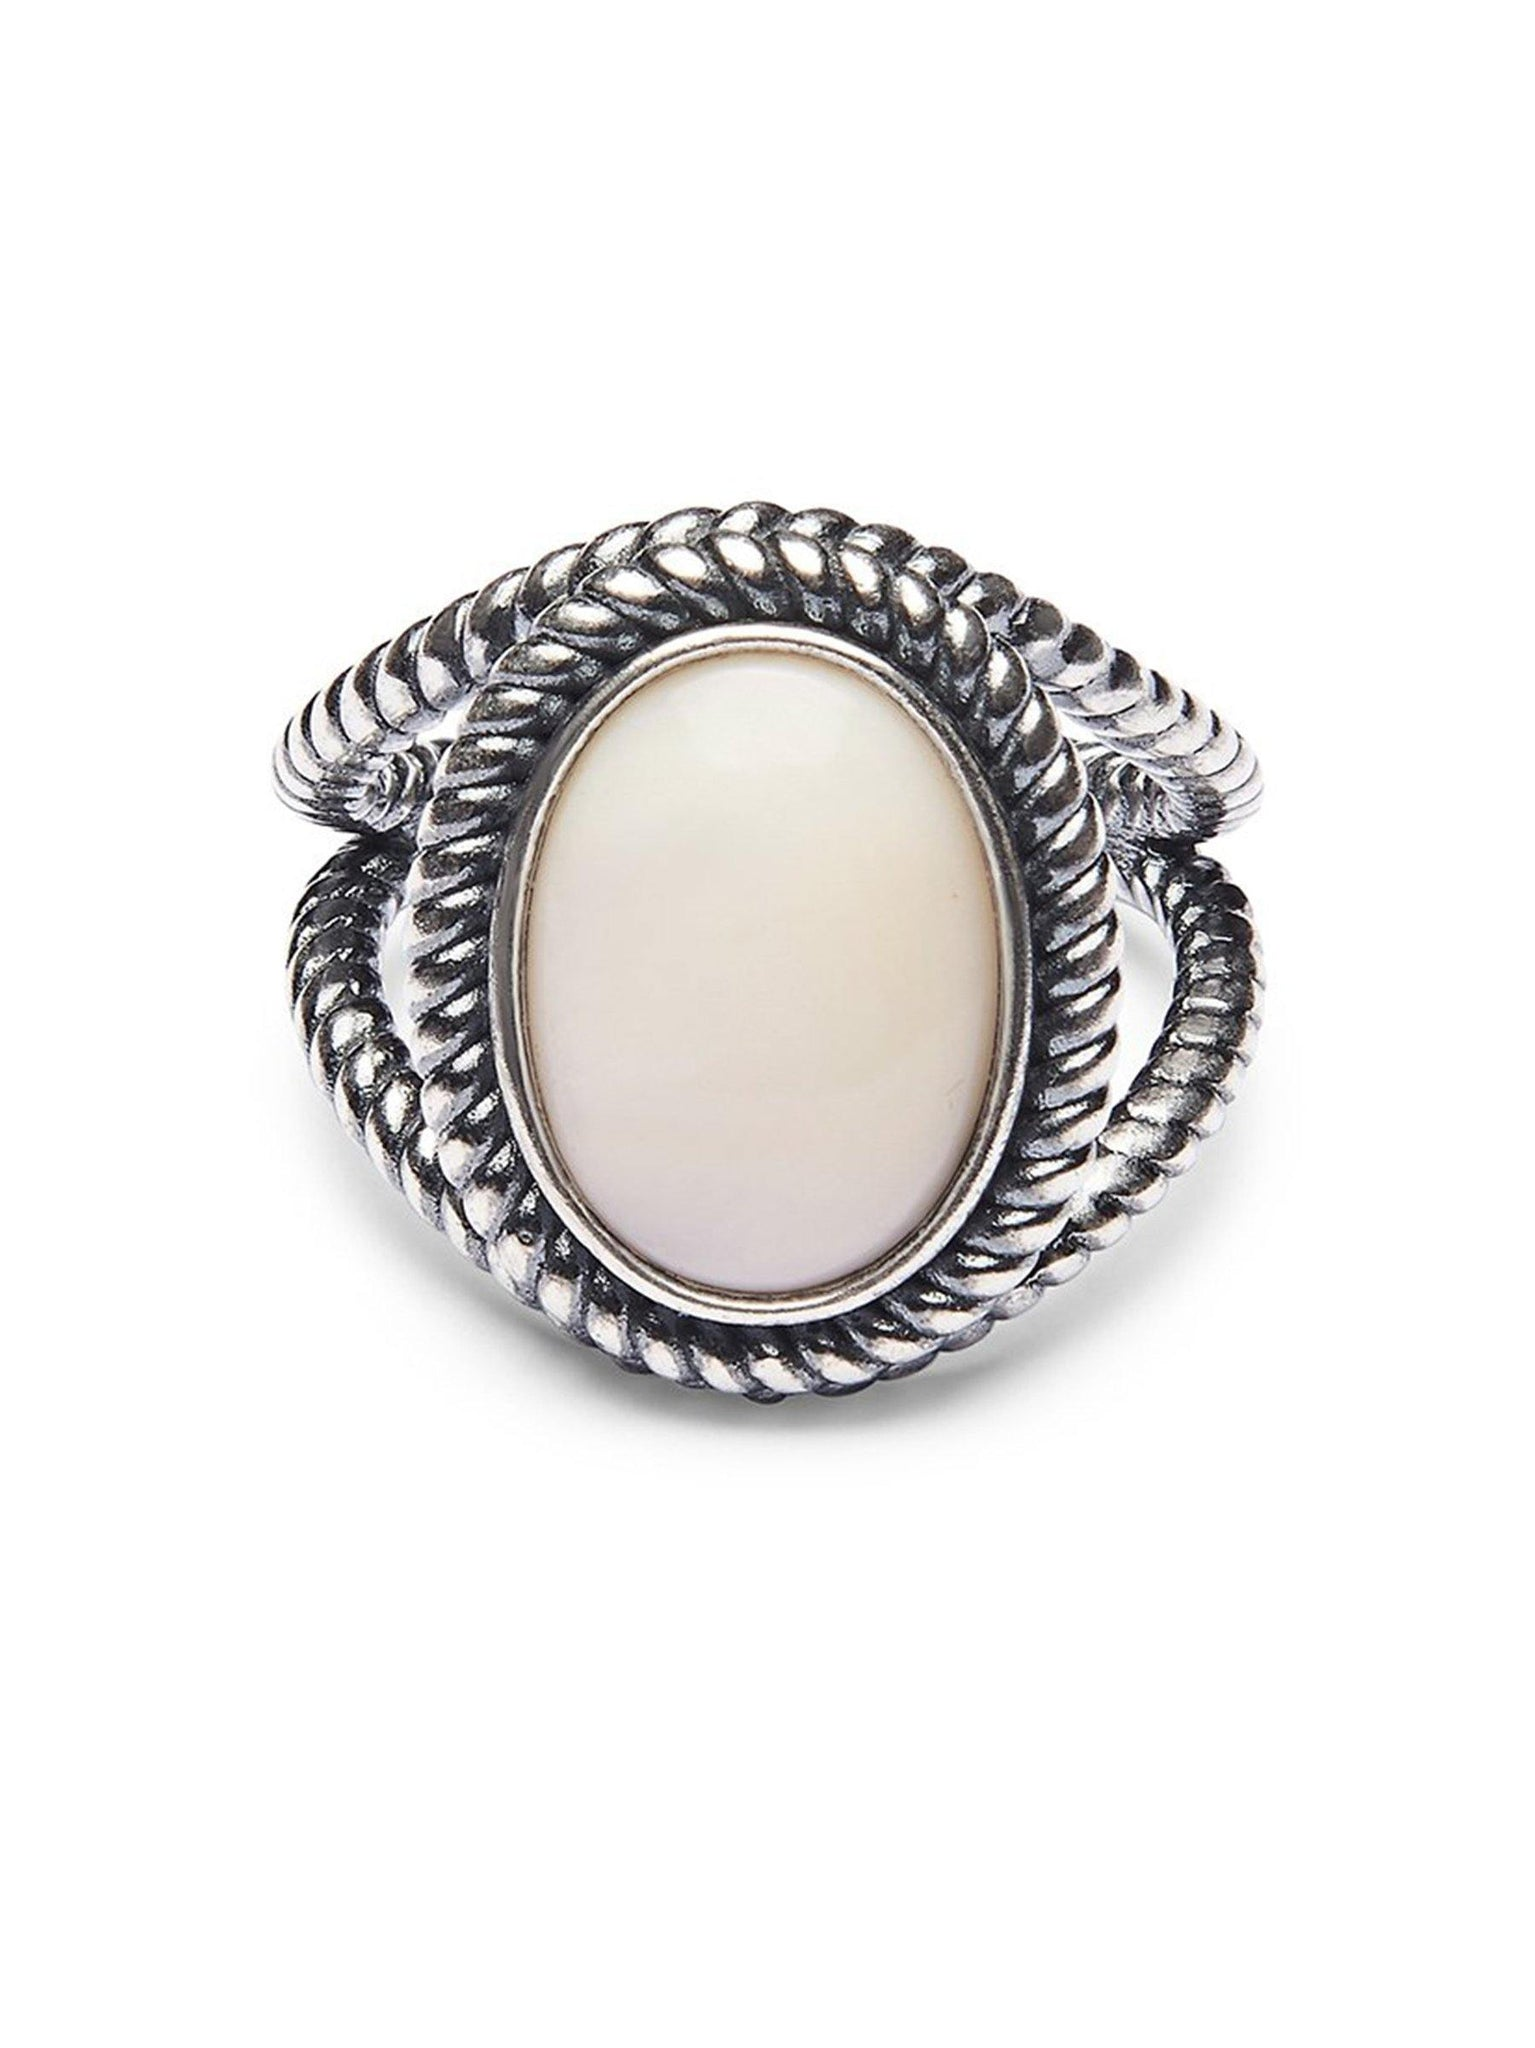 Men's Silver Ring with Mother Of Pearl Stone - Nialaya Jewelry